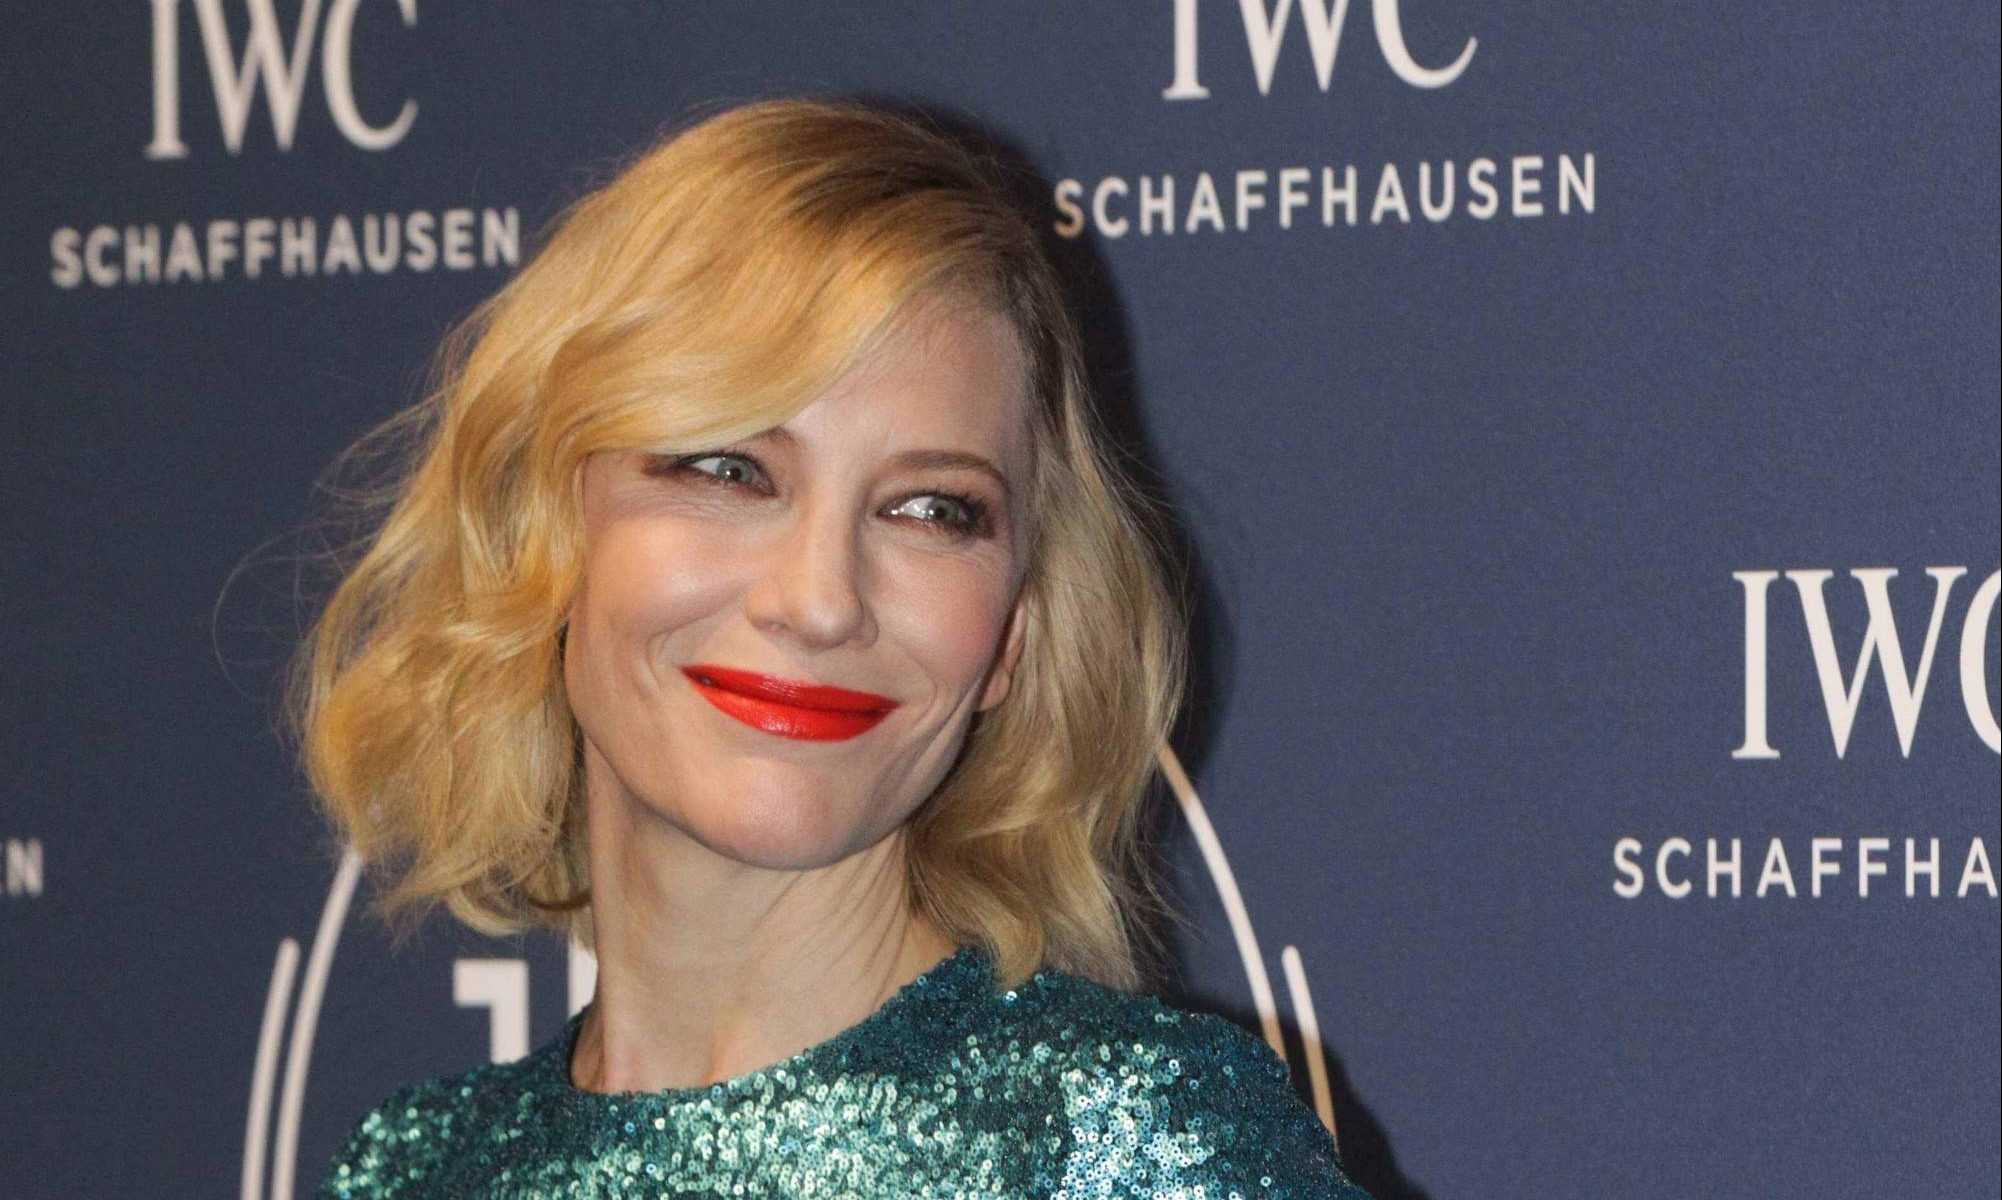 Cate Blanchett at the IWC Schaffhausen 150th Anniversary Gala – Additional Photos